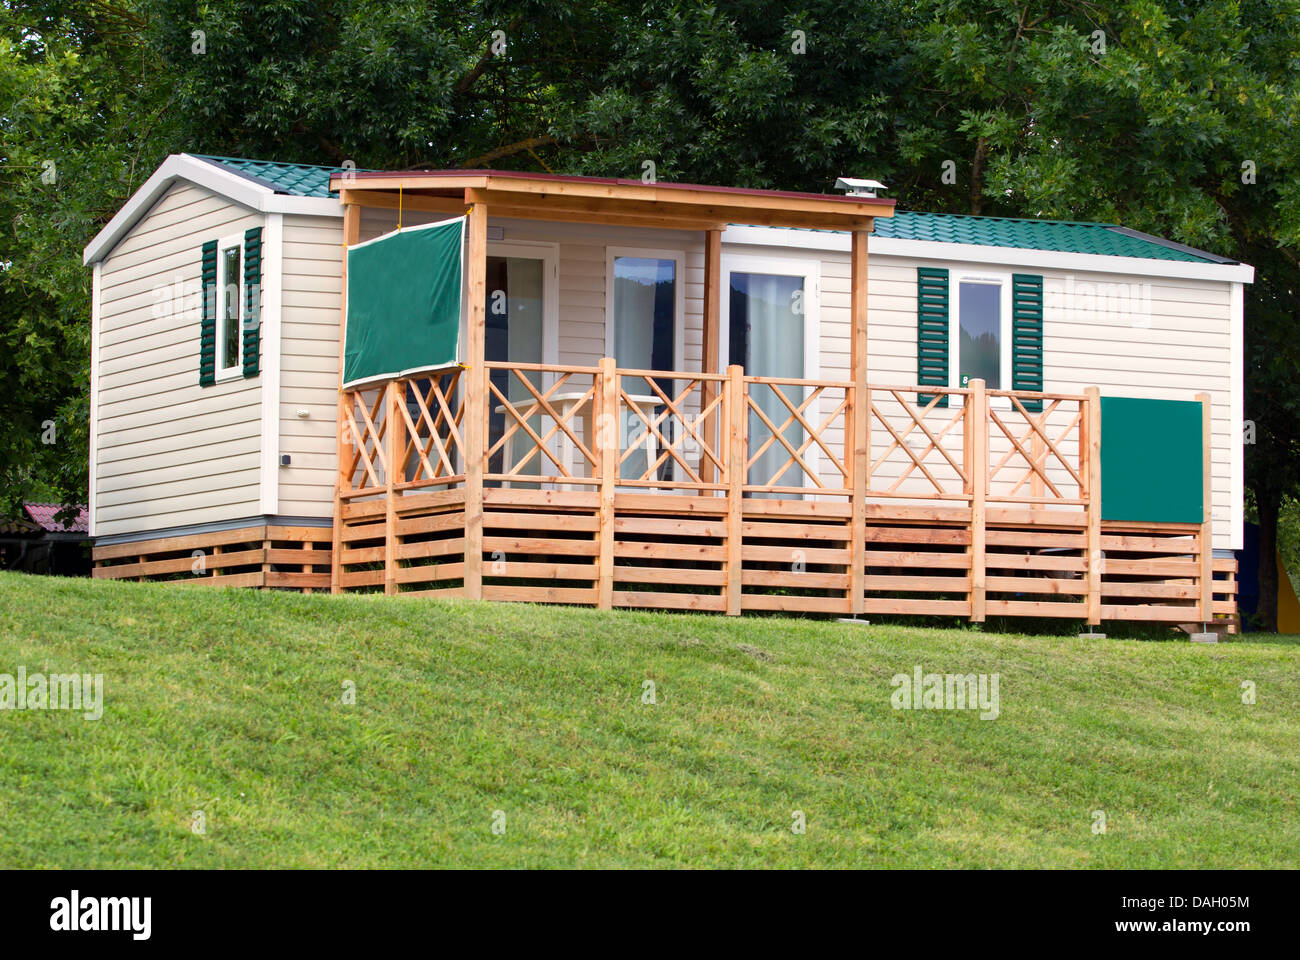 Small Camping Cabin In The Camp Stock Photo 58151008 Alamy